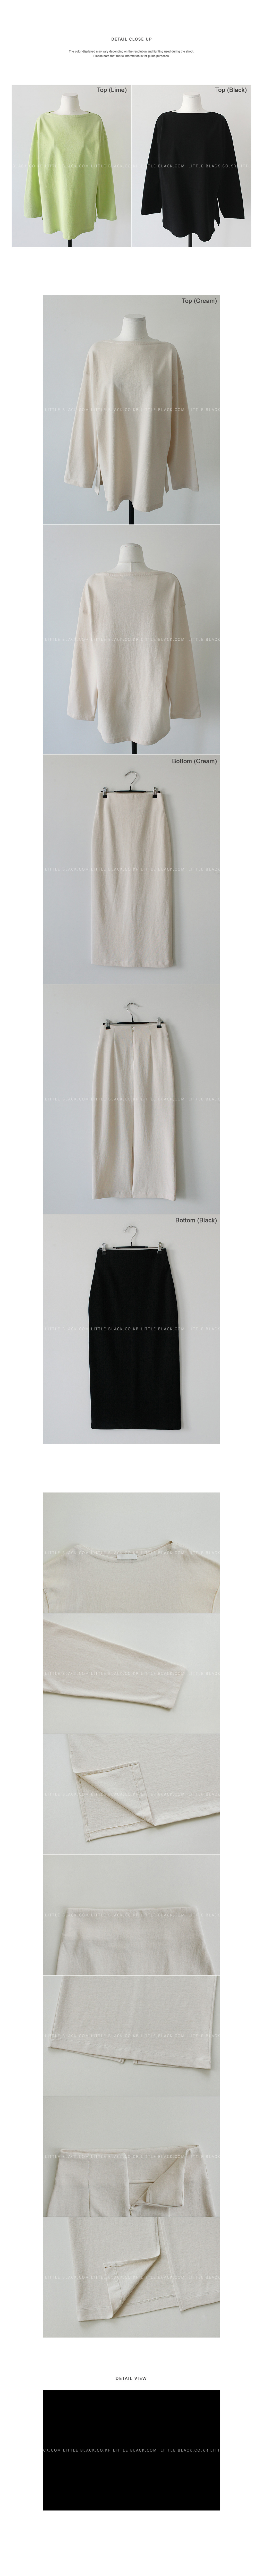 Cotton Boat Neck Top And Rear Vent Skirt|